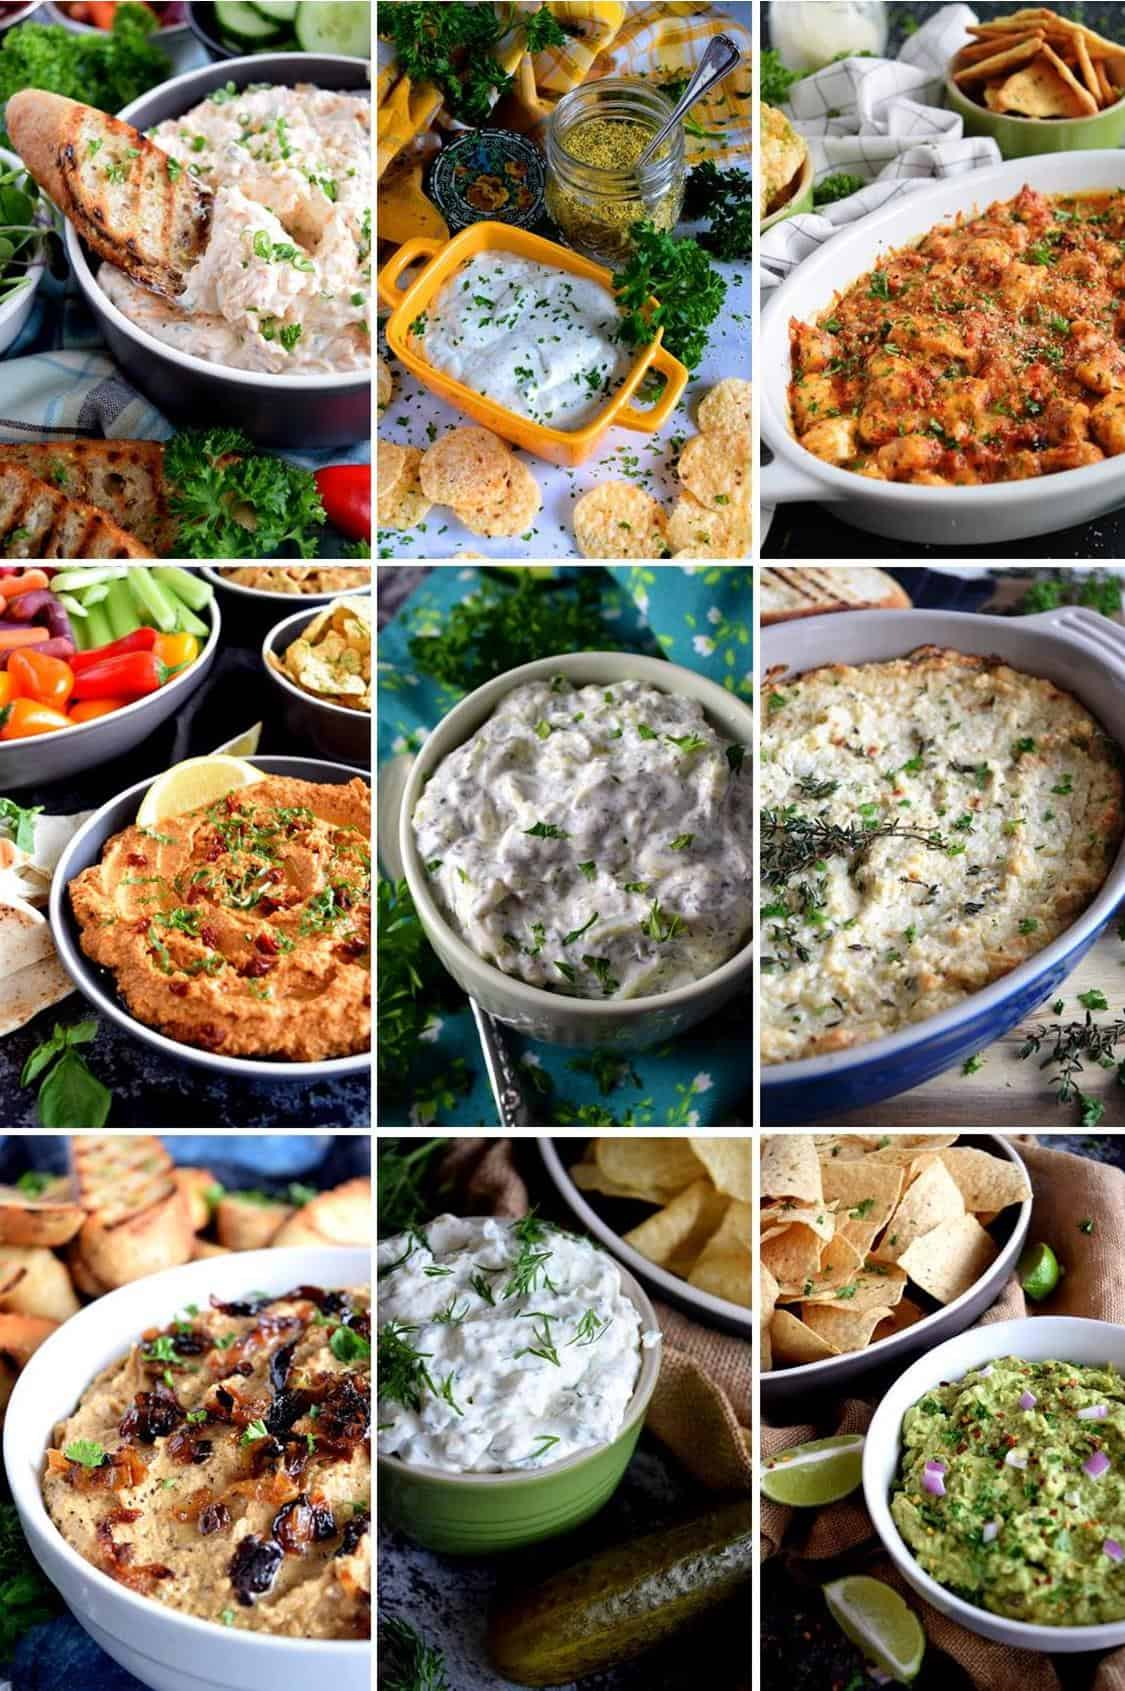 14 Delicious Dips And Spreads